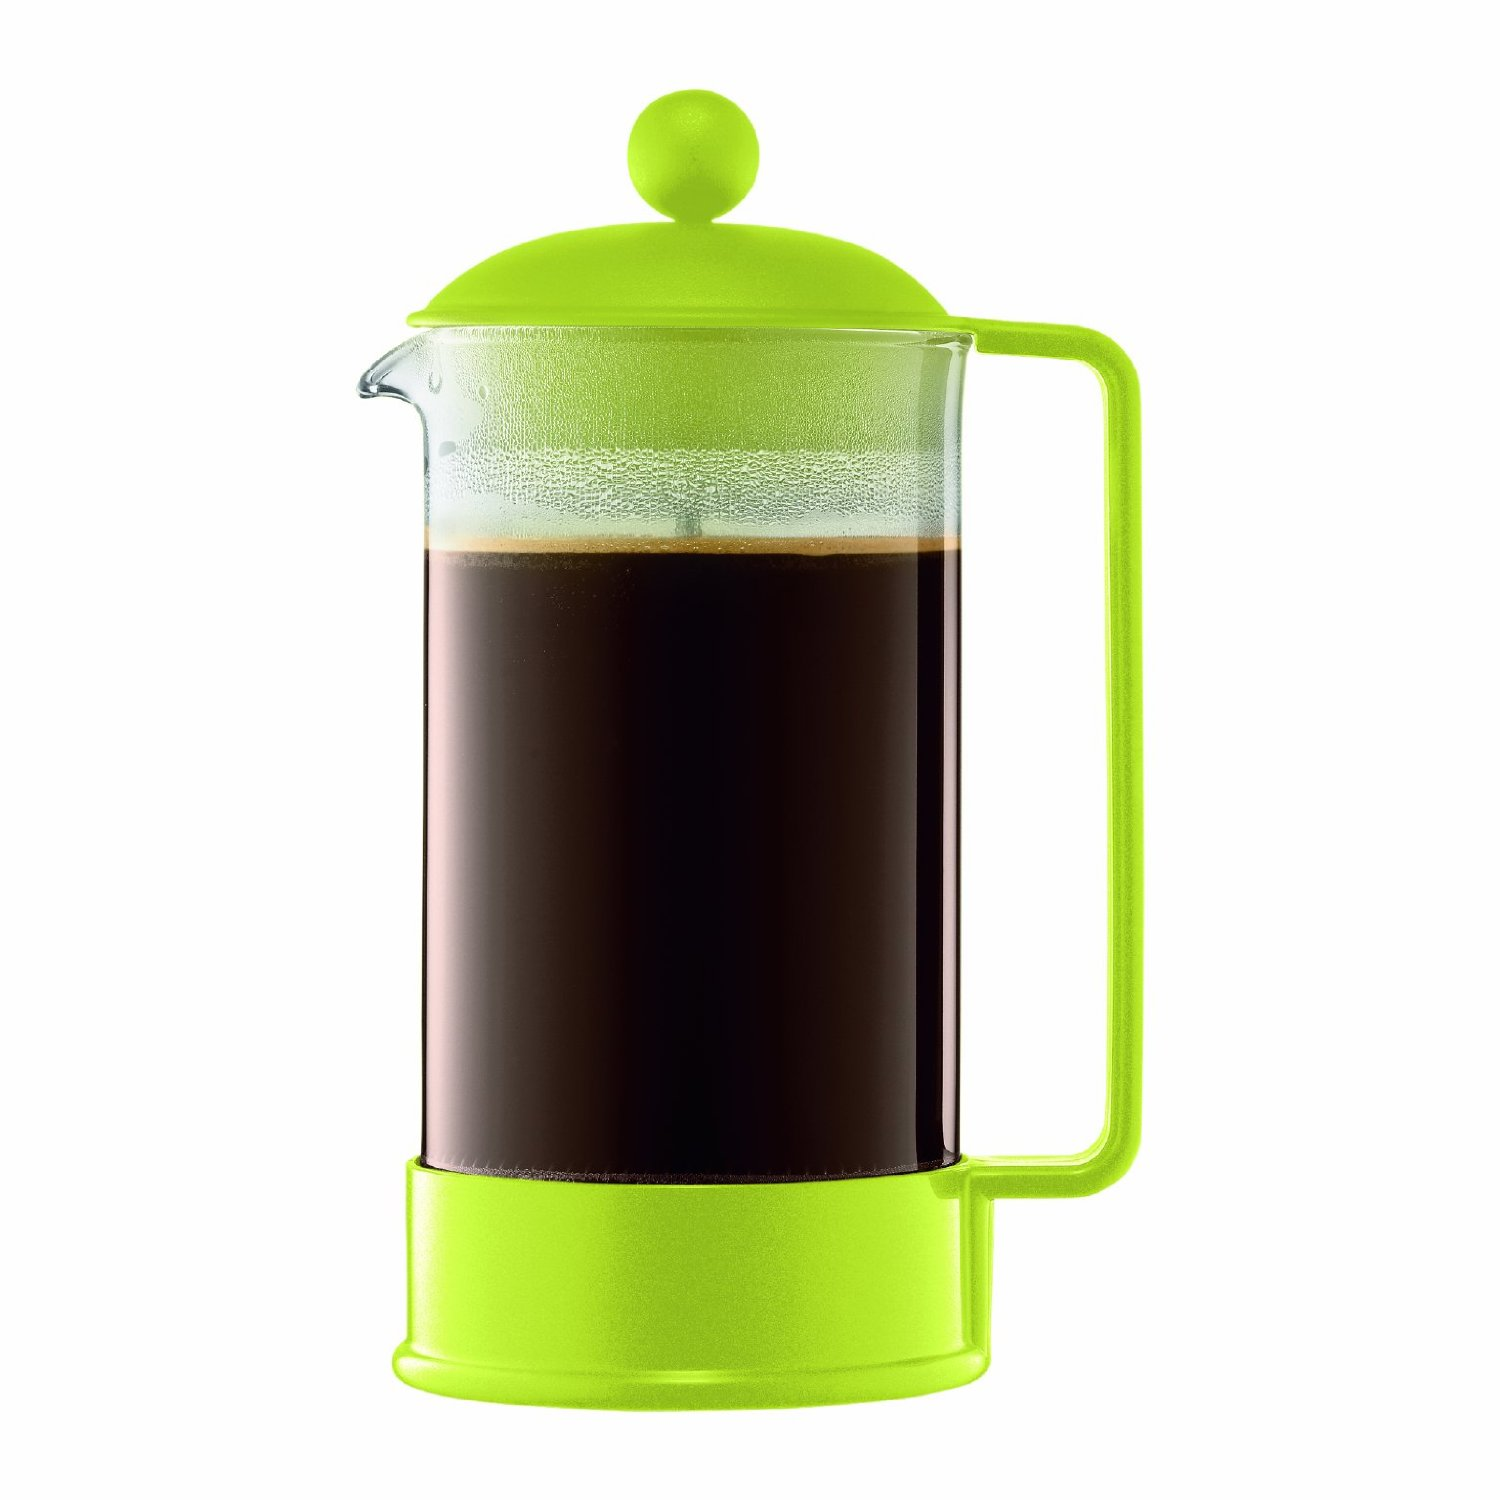 Bodum Brazil 8-Cup French Press Coffee Maker